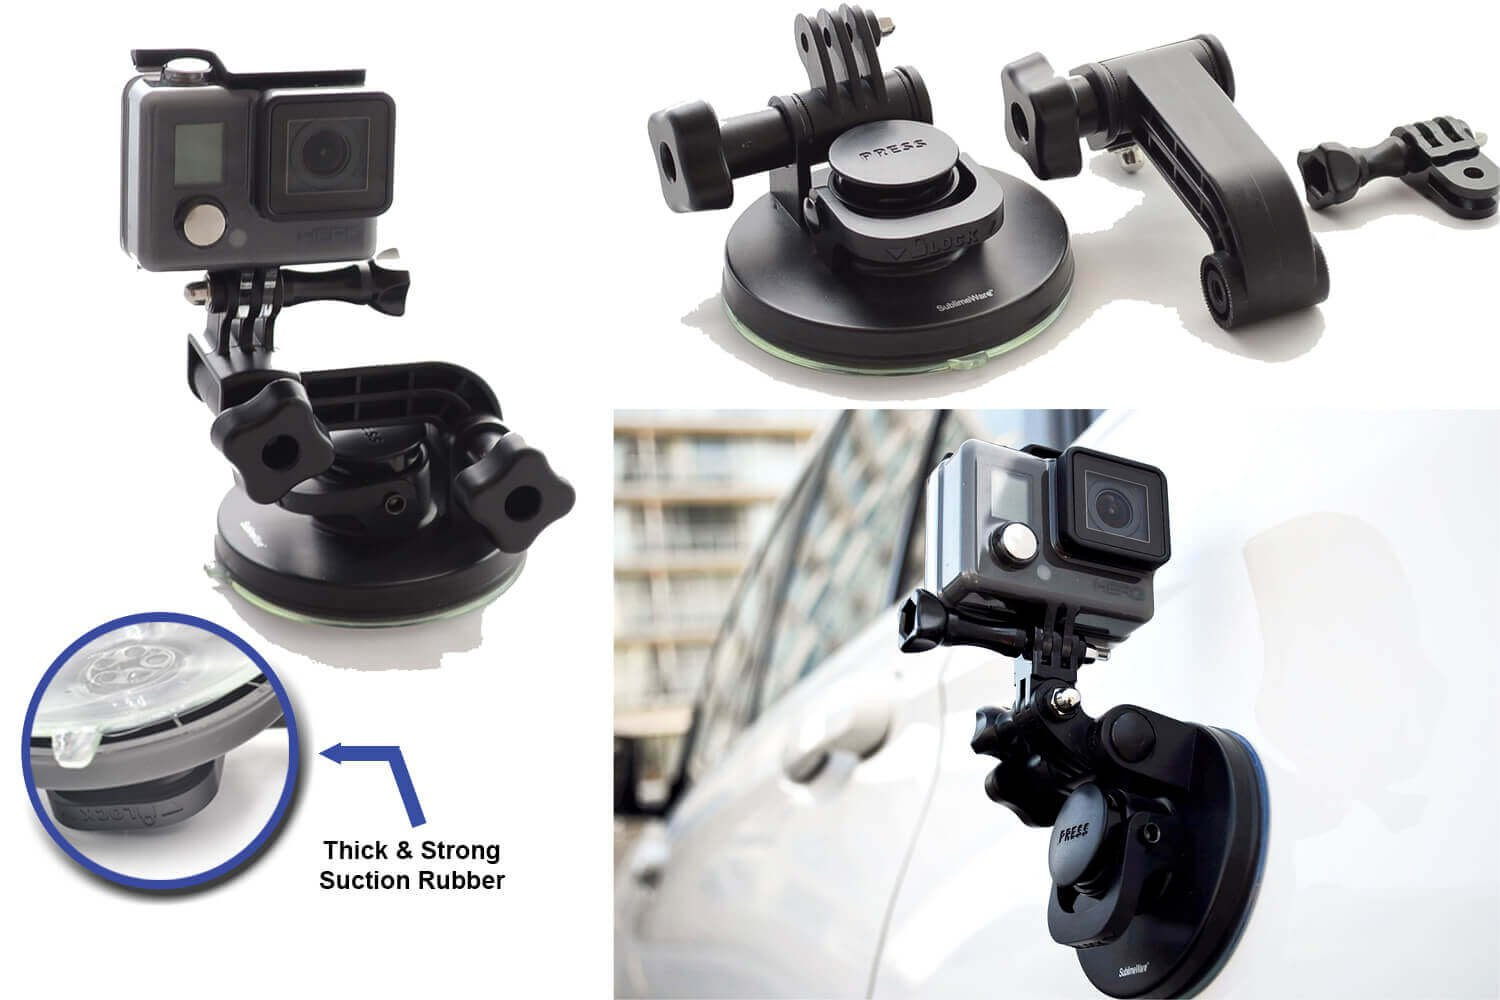 Suction Cup for Gopro Mount Car Windshield Window Vehicle Boat Camera Holder for Gopro Suction Cup Mount gopro Windshield Mount Hero2 Hero3 Hero3+ Hero4 Hero5 Hero6 Black Session HD by SublimeWare by SublimeWare